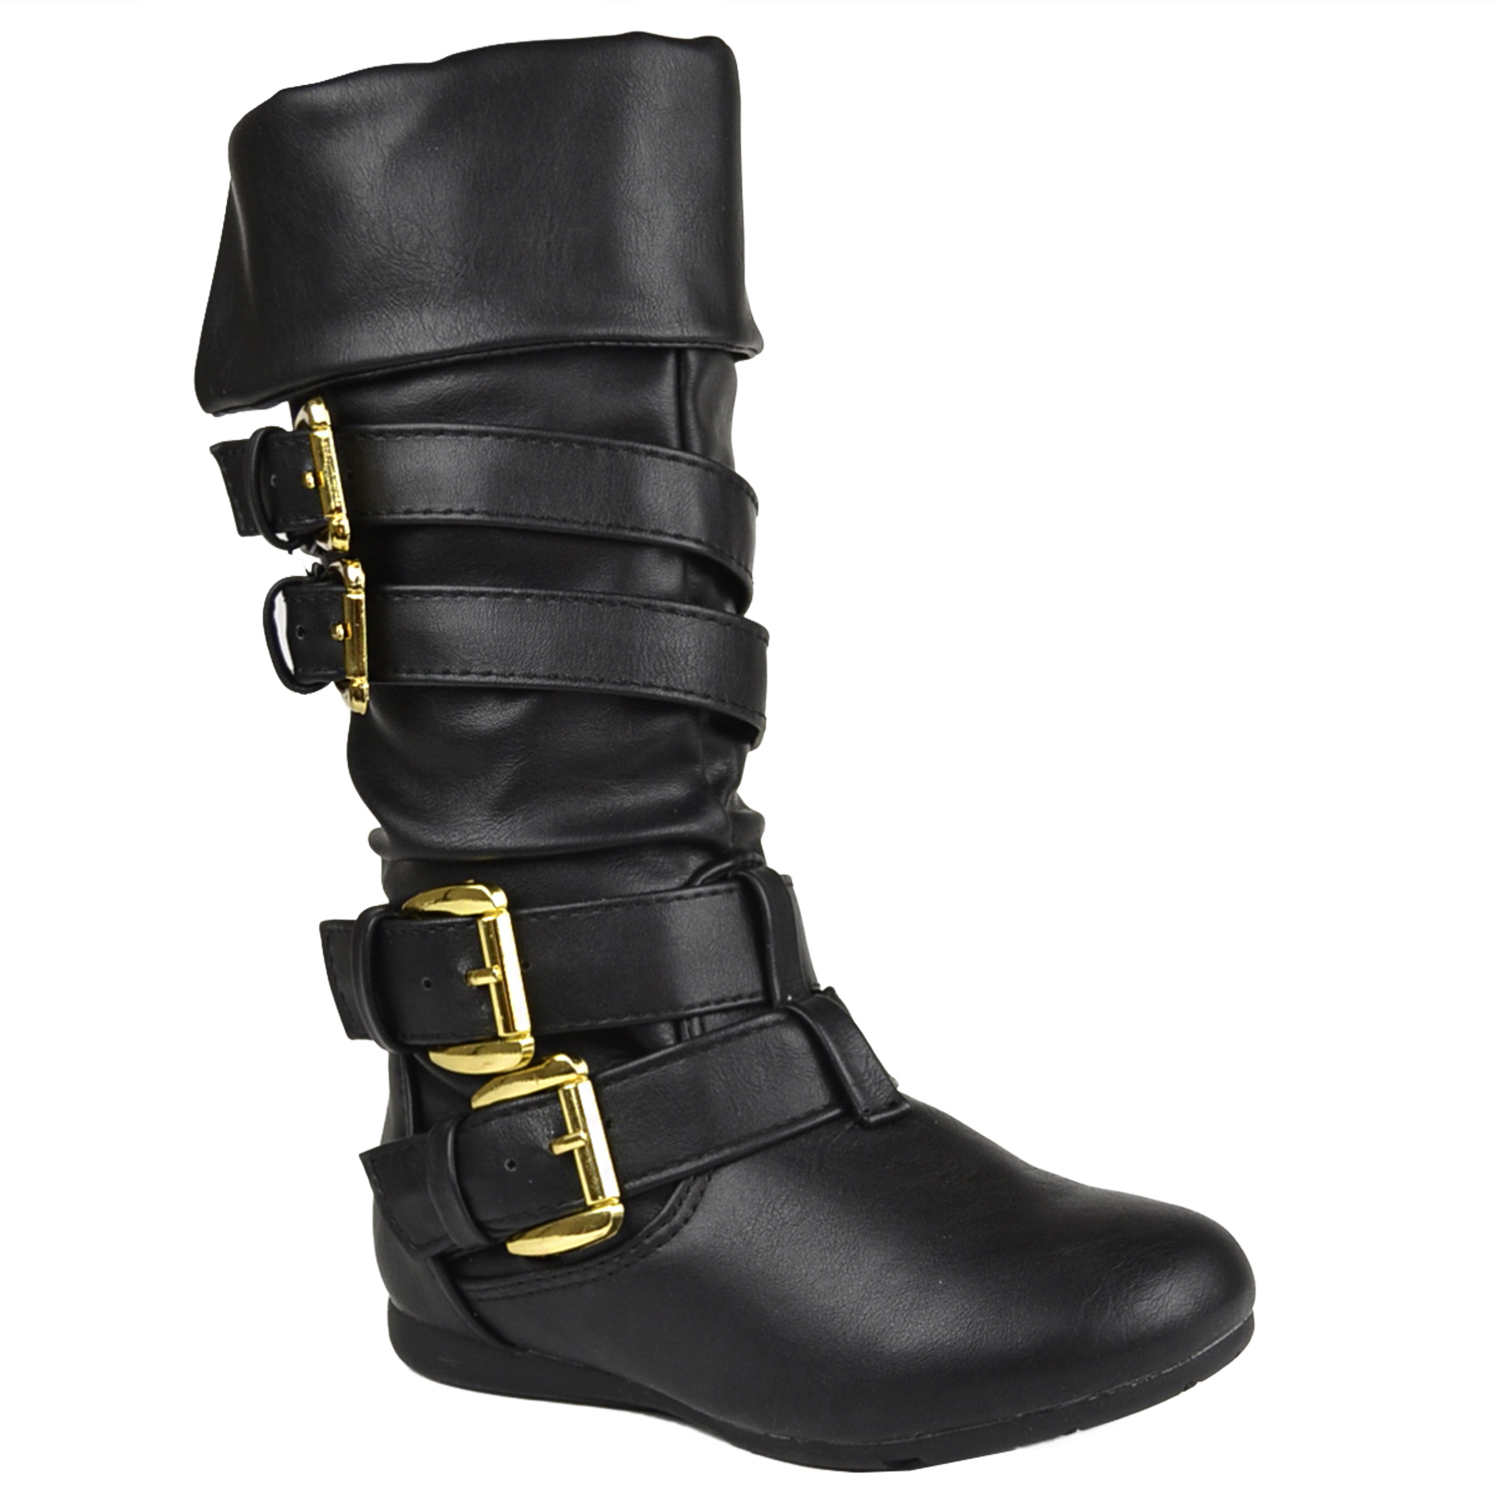 Black Faux Leather Slip On Buckles Girls Mid-Calf Boots Kids Shoes Youth Size 9